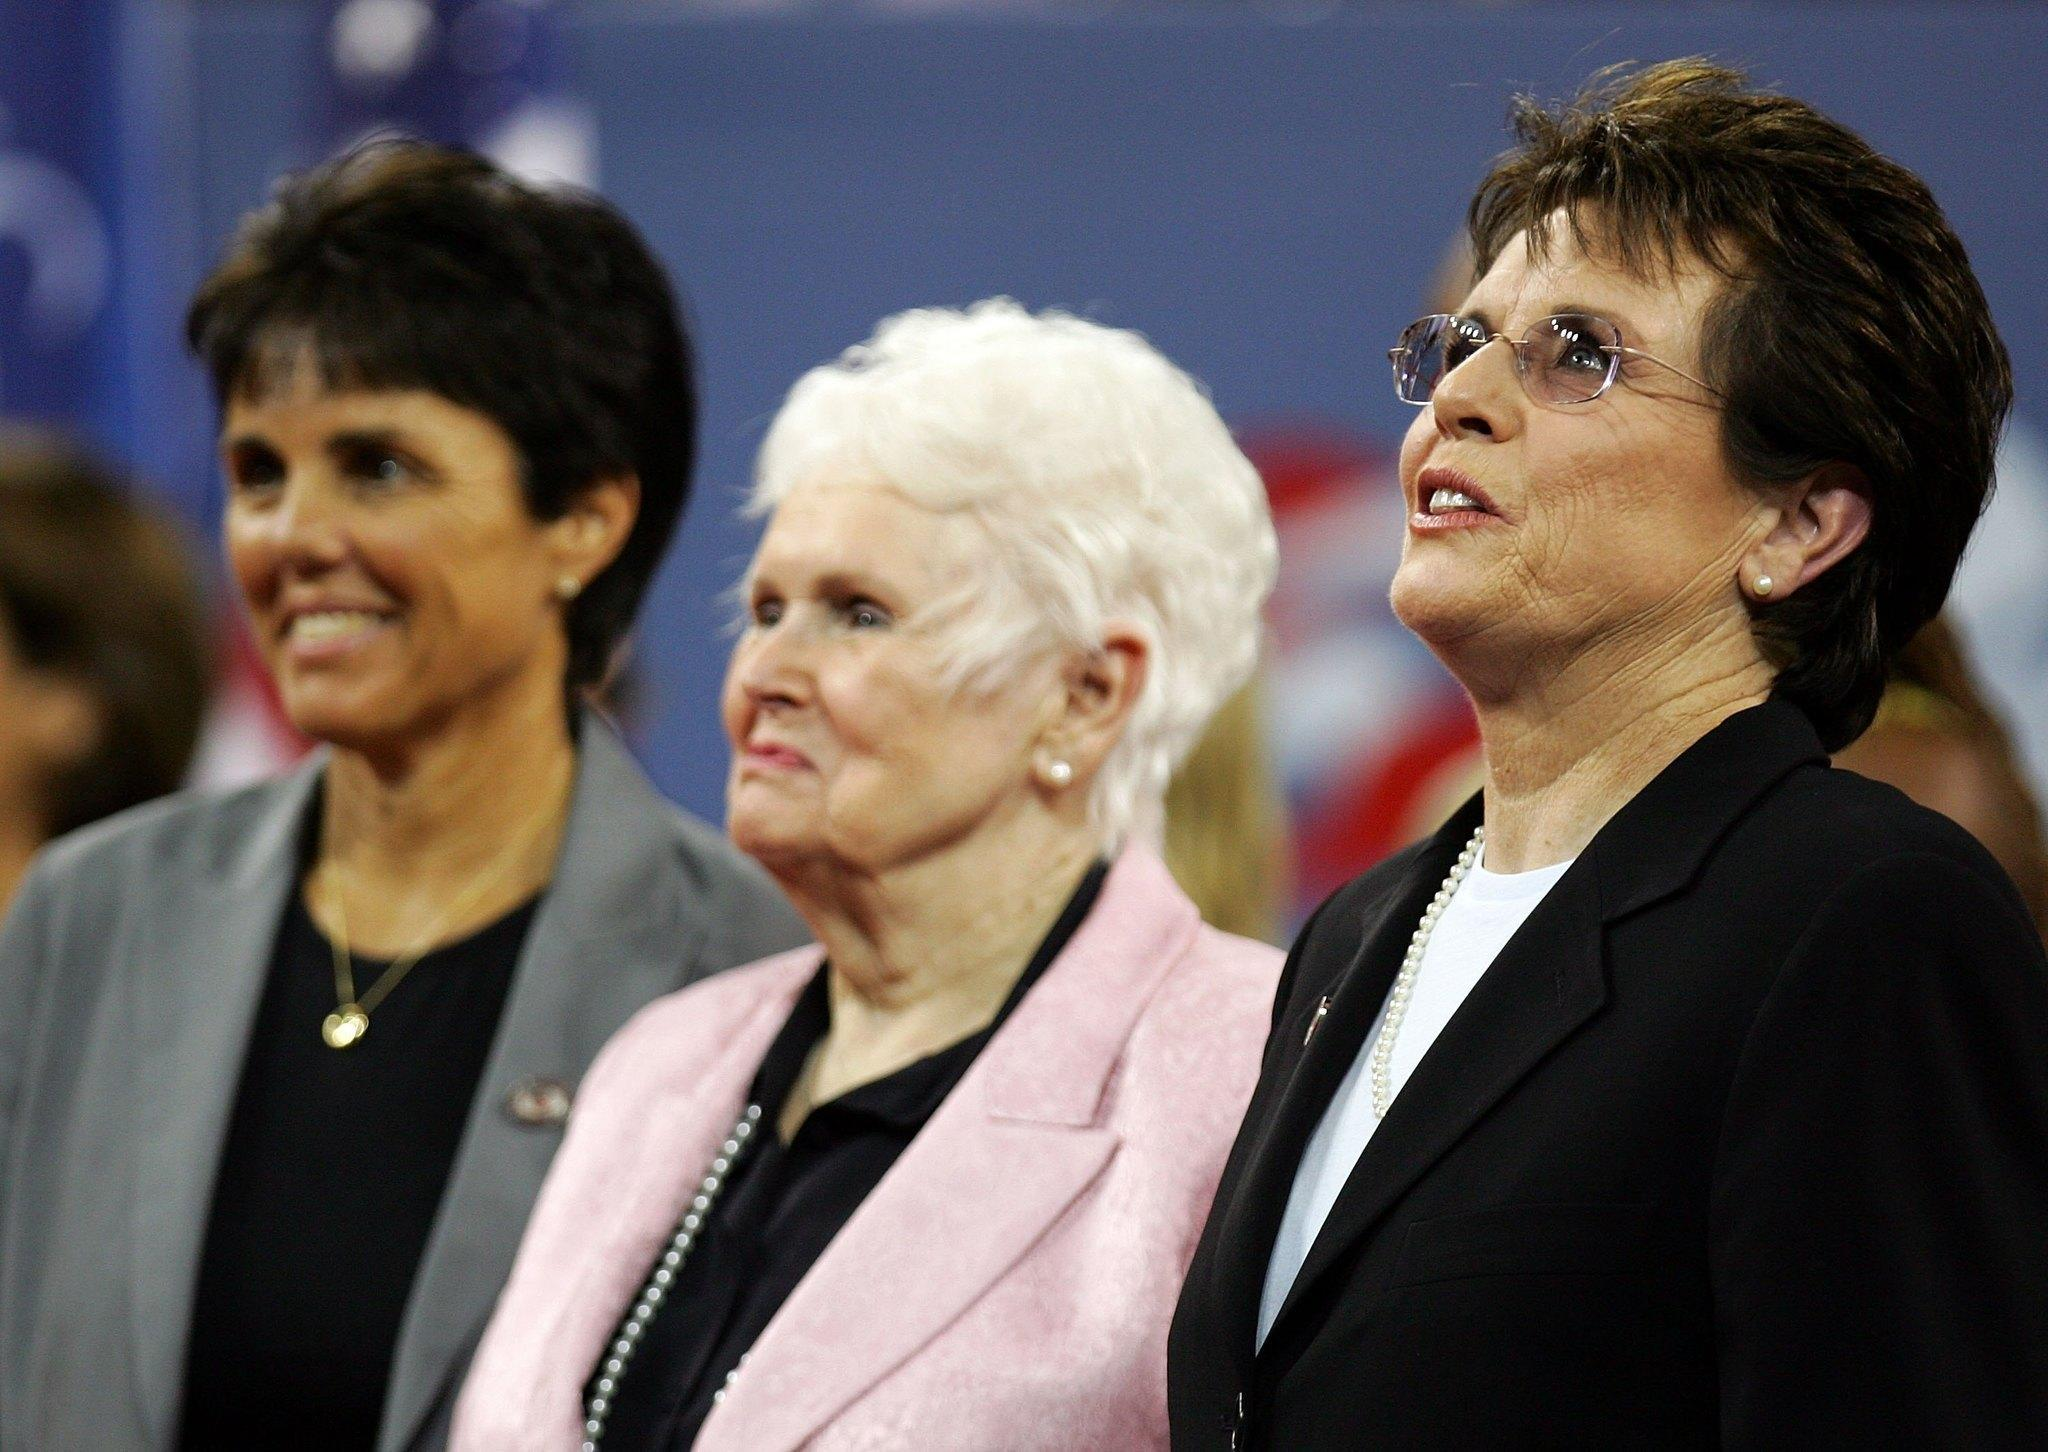 (R-L) Tennis legend Billie Jean King and her mother Betty Moffitt attend the opening ceremony during the day of the US Open at the USTA Billie Jean King National Tennis Center in Flushing Meadows Corona Park.